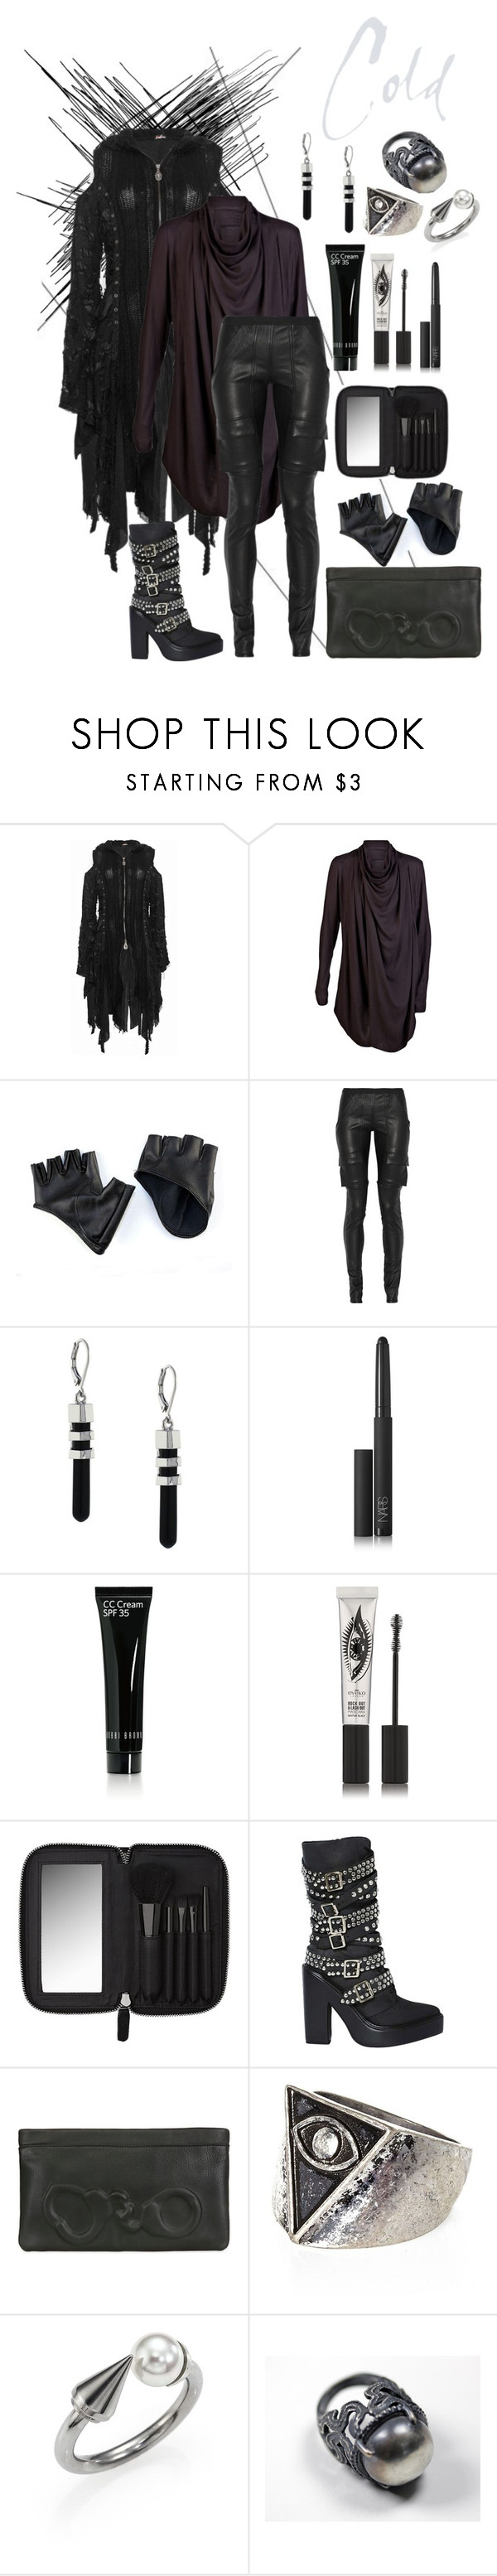 """Cold"" by rowangingerraven ❤ liked on Polyvore featuring Julius, Rick Owens, Vince Camuto, NARS Cosmetics, Bobbi Brown Cosmetics, Eyeko, Witchery, Jeffrey Campbell, Vlieger & Vandam and River Island"